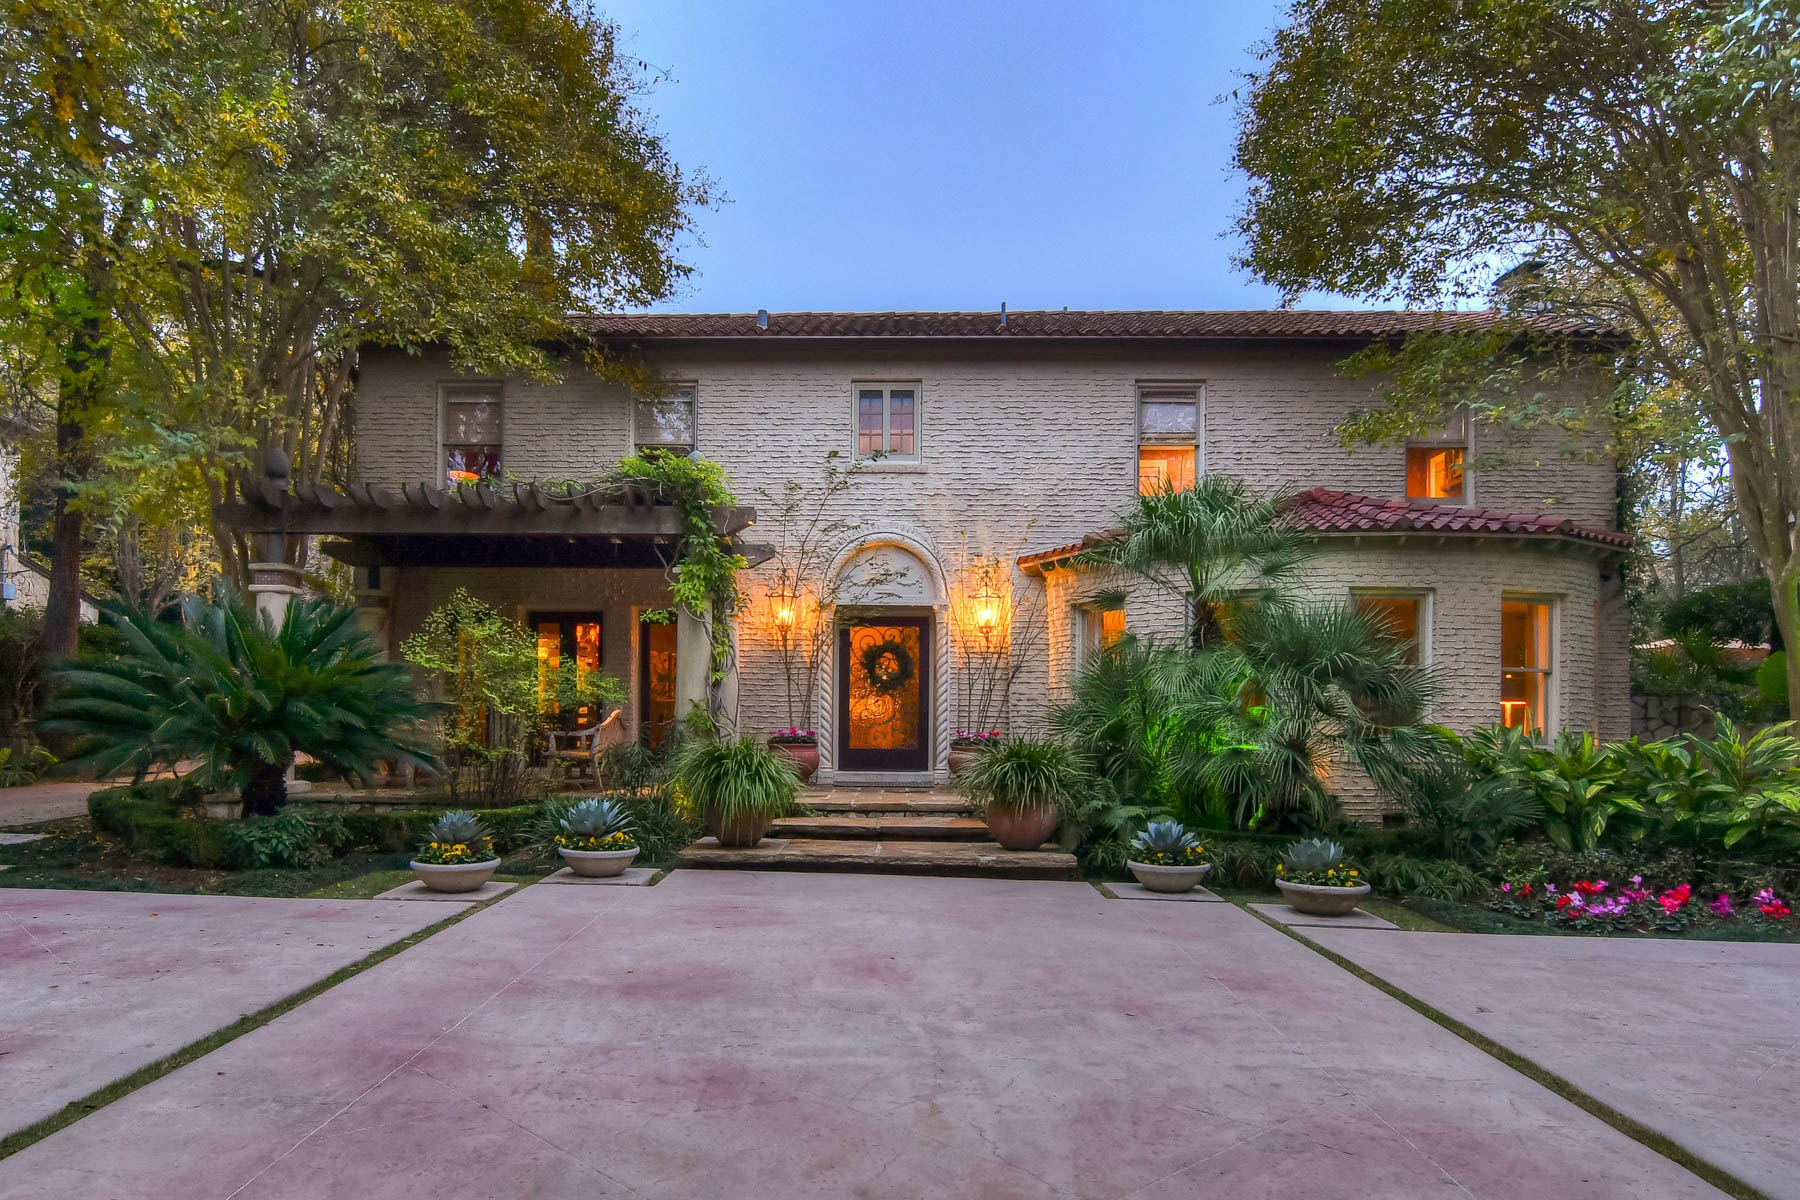 Single Family Home for Sale at Vintage 1920's Olmos Park Estate 408 Park Dr Olmos Park, Texas 78212 United States